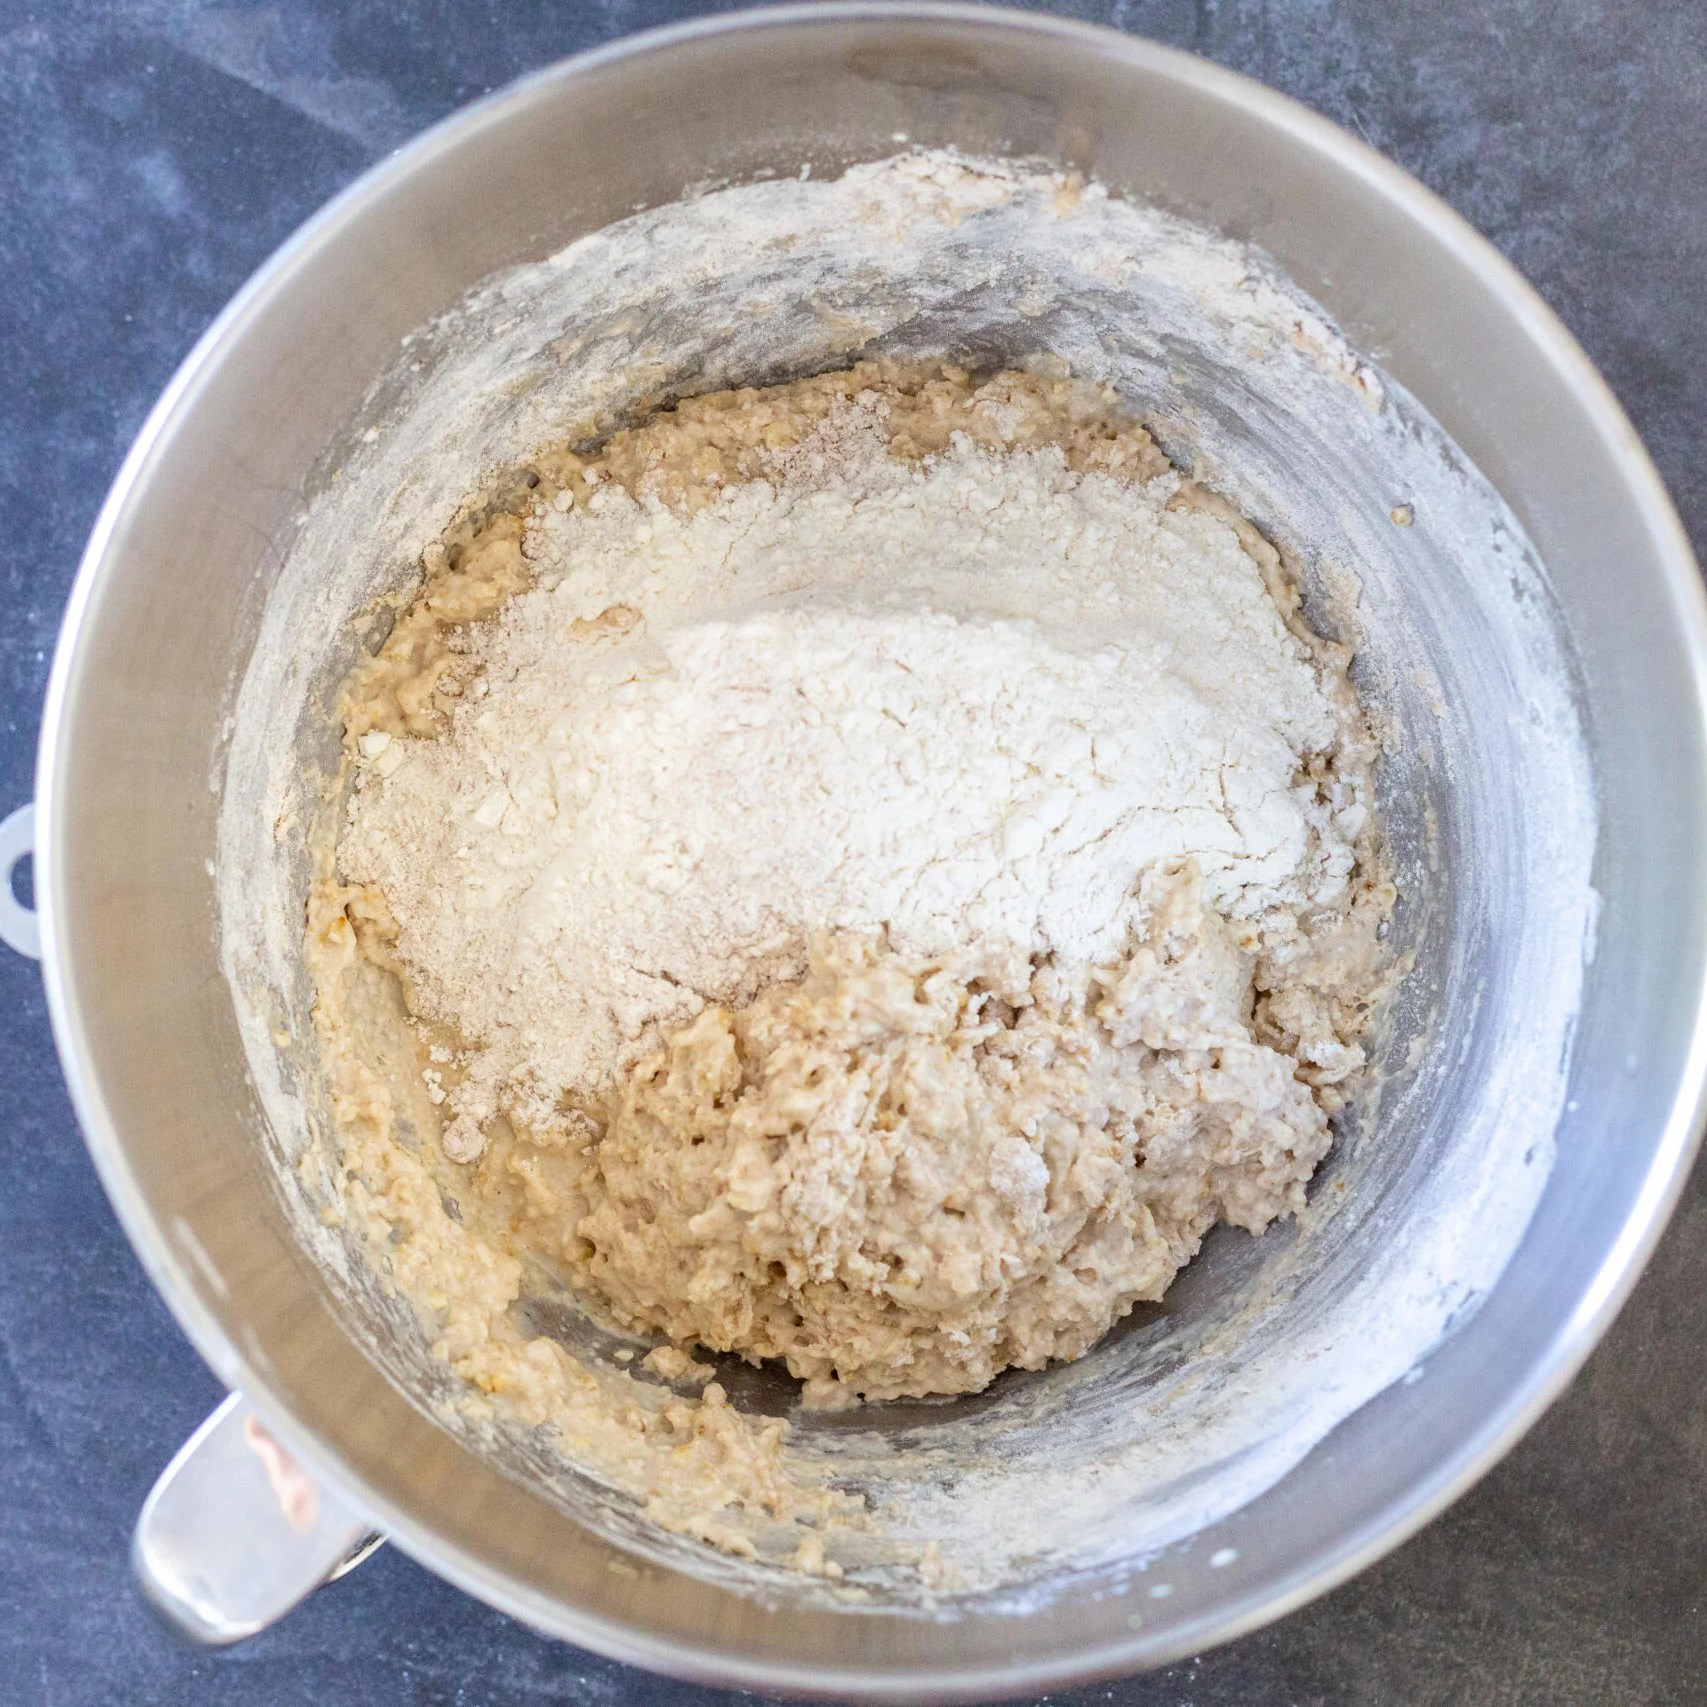 flour added to a mixing bowl with dough